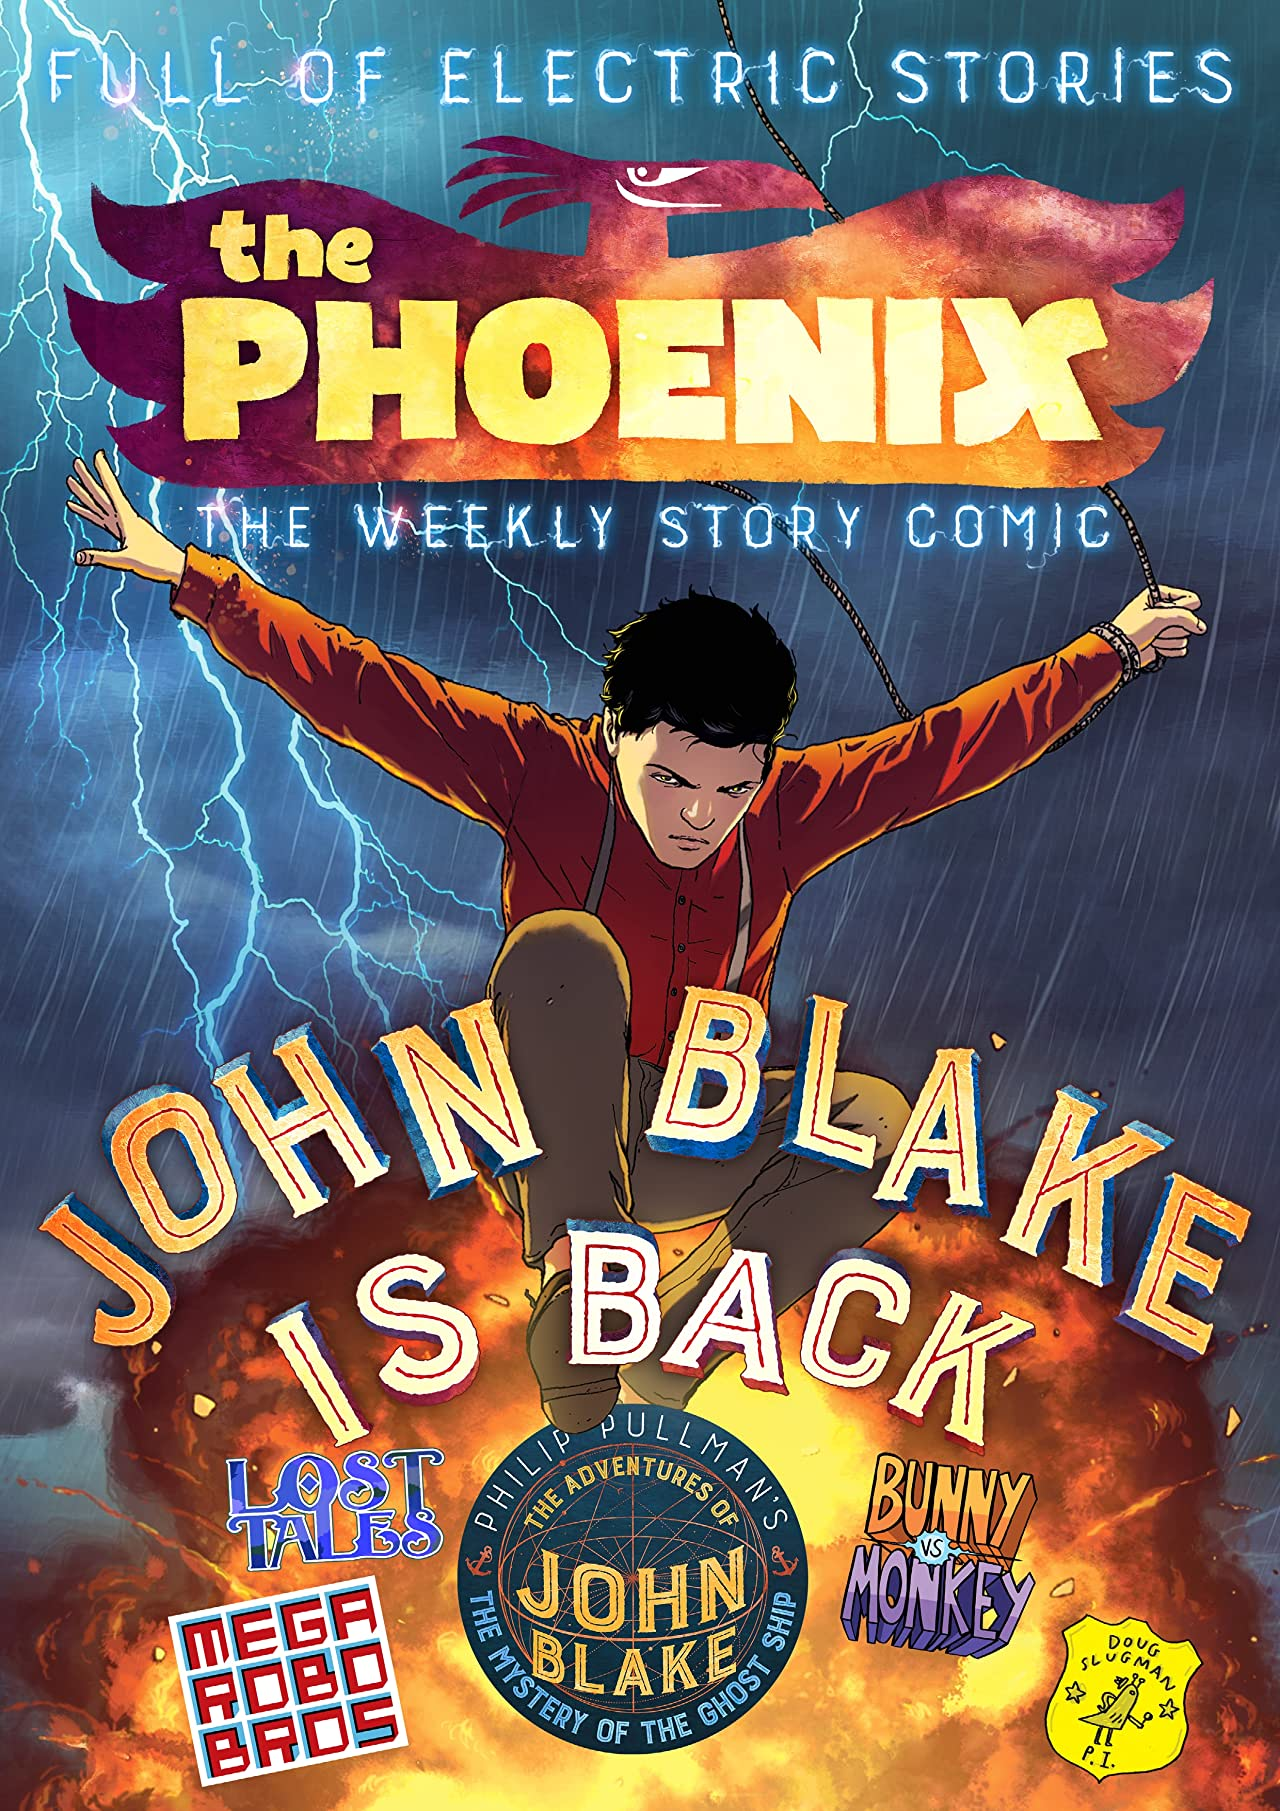 The Phoenix #248: The Weekly Story Comic